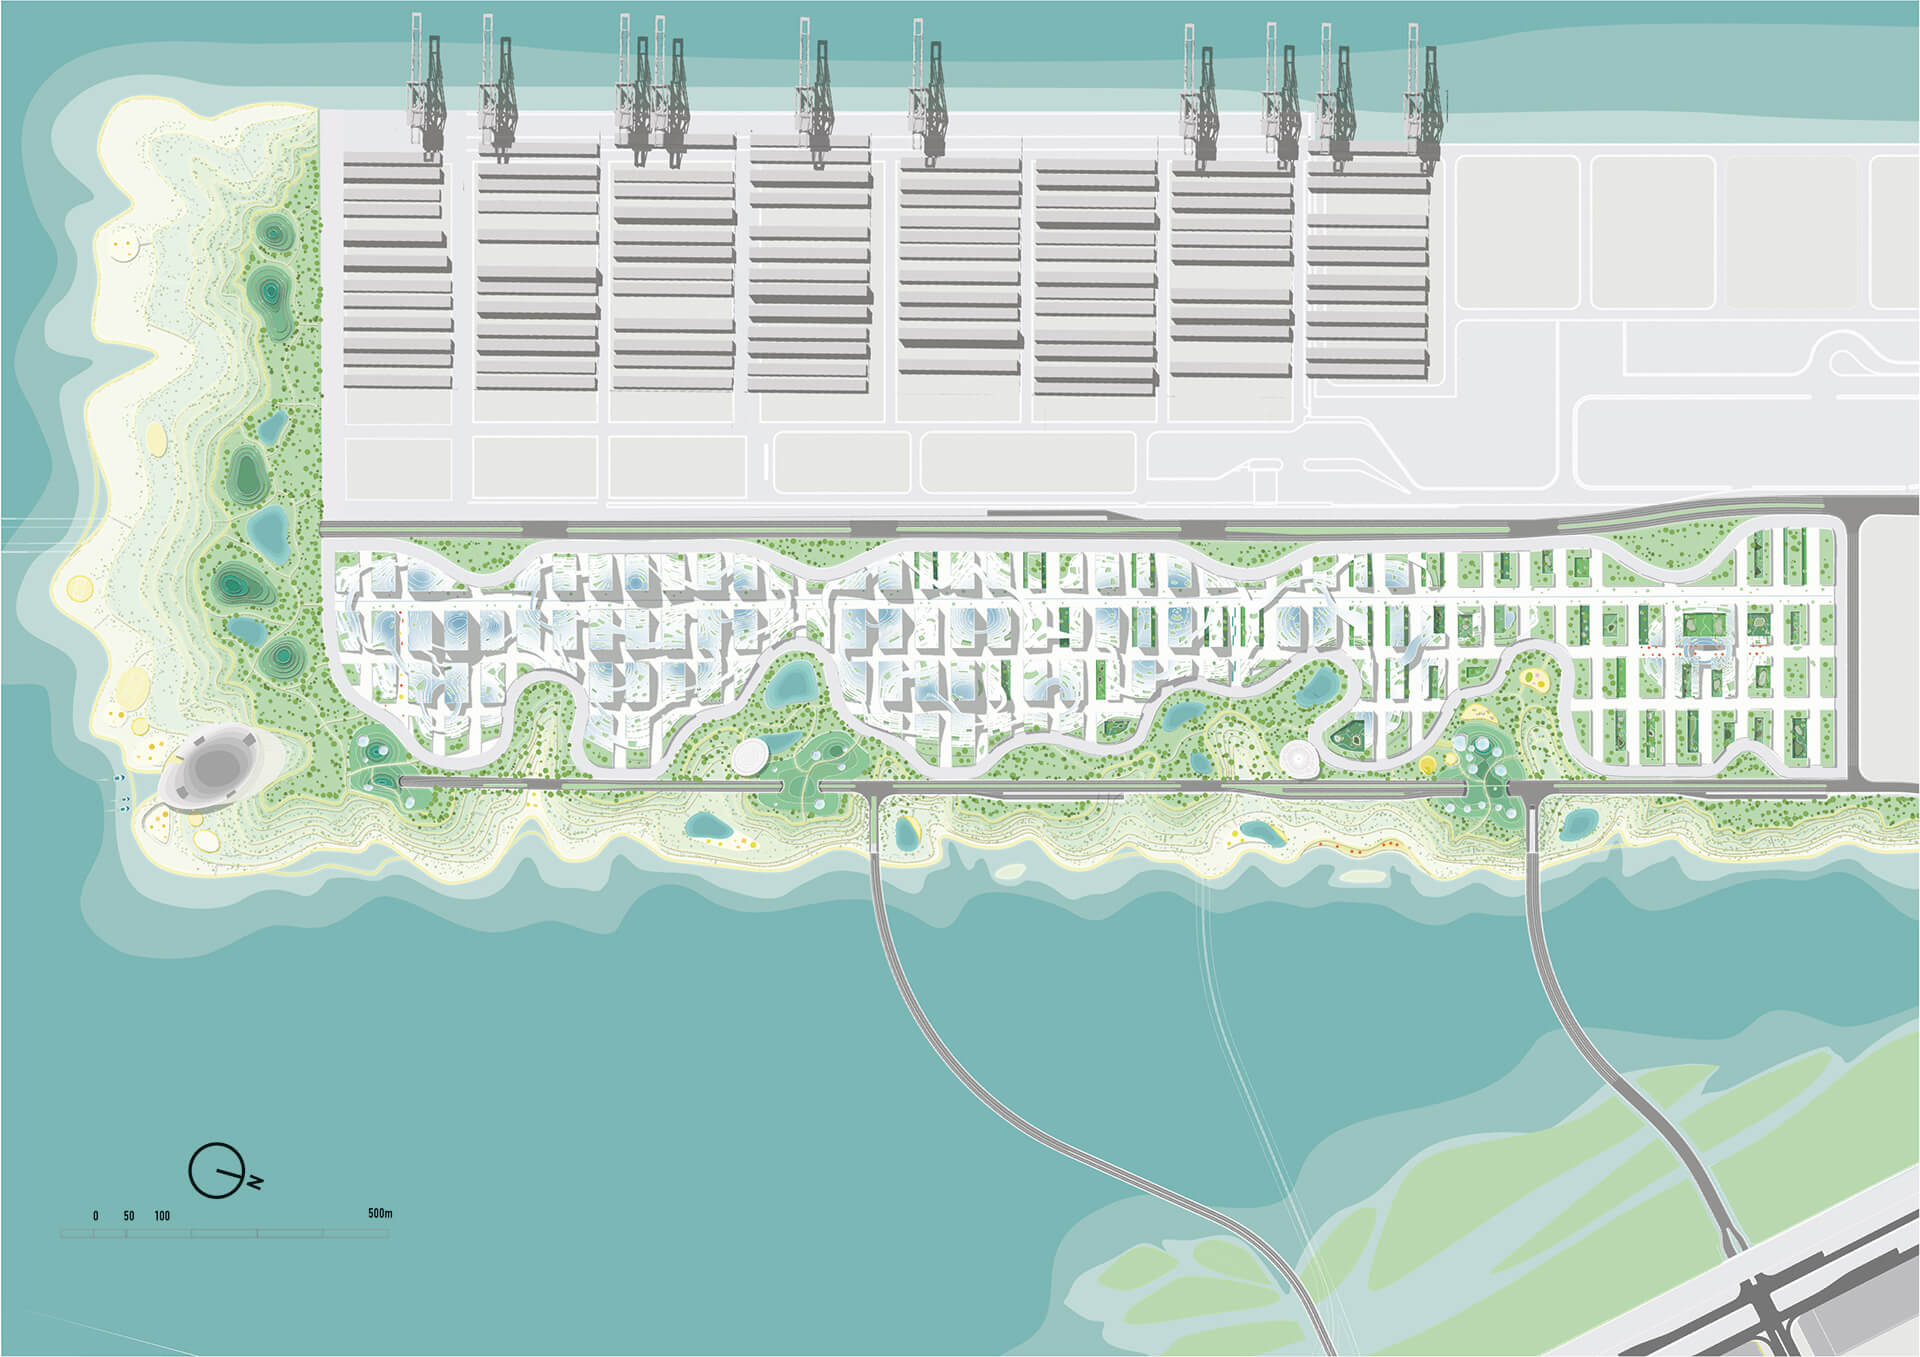 Proposed masterplan of the project  | New Tencent Headquarters Campus | MVRDV | STIRworld